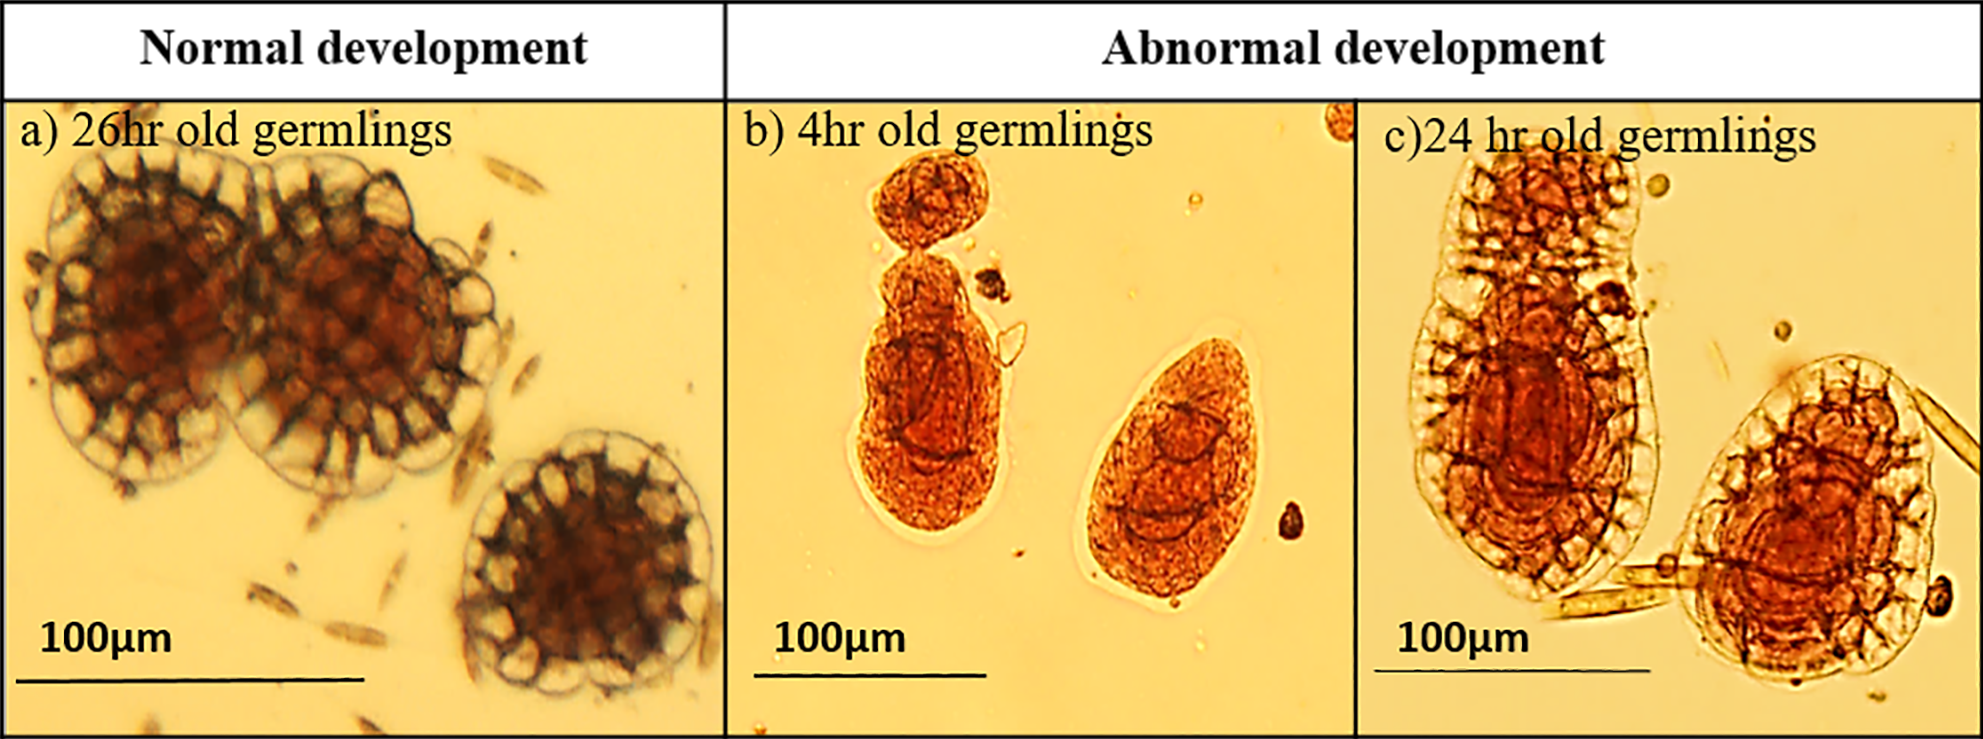 - Normal and abnormal development of germlings of the coralline algae Porolithon onkodes.(a) Normal germling development refers to when cell divisions and germination disc are clearly visible and development is circular and symmetrical.(b, c) Abnormal development shows irregular and enlarged cells, particularly in cells forming the germination disc.